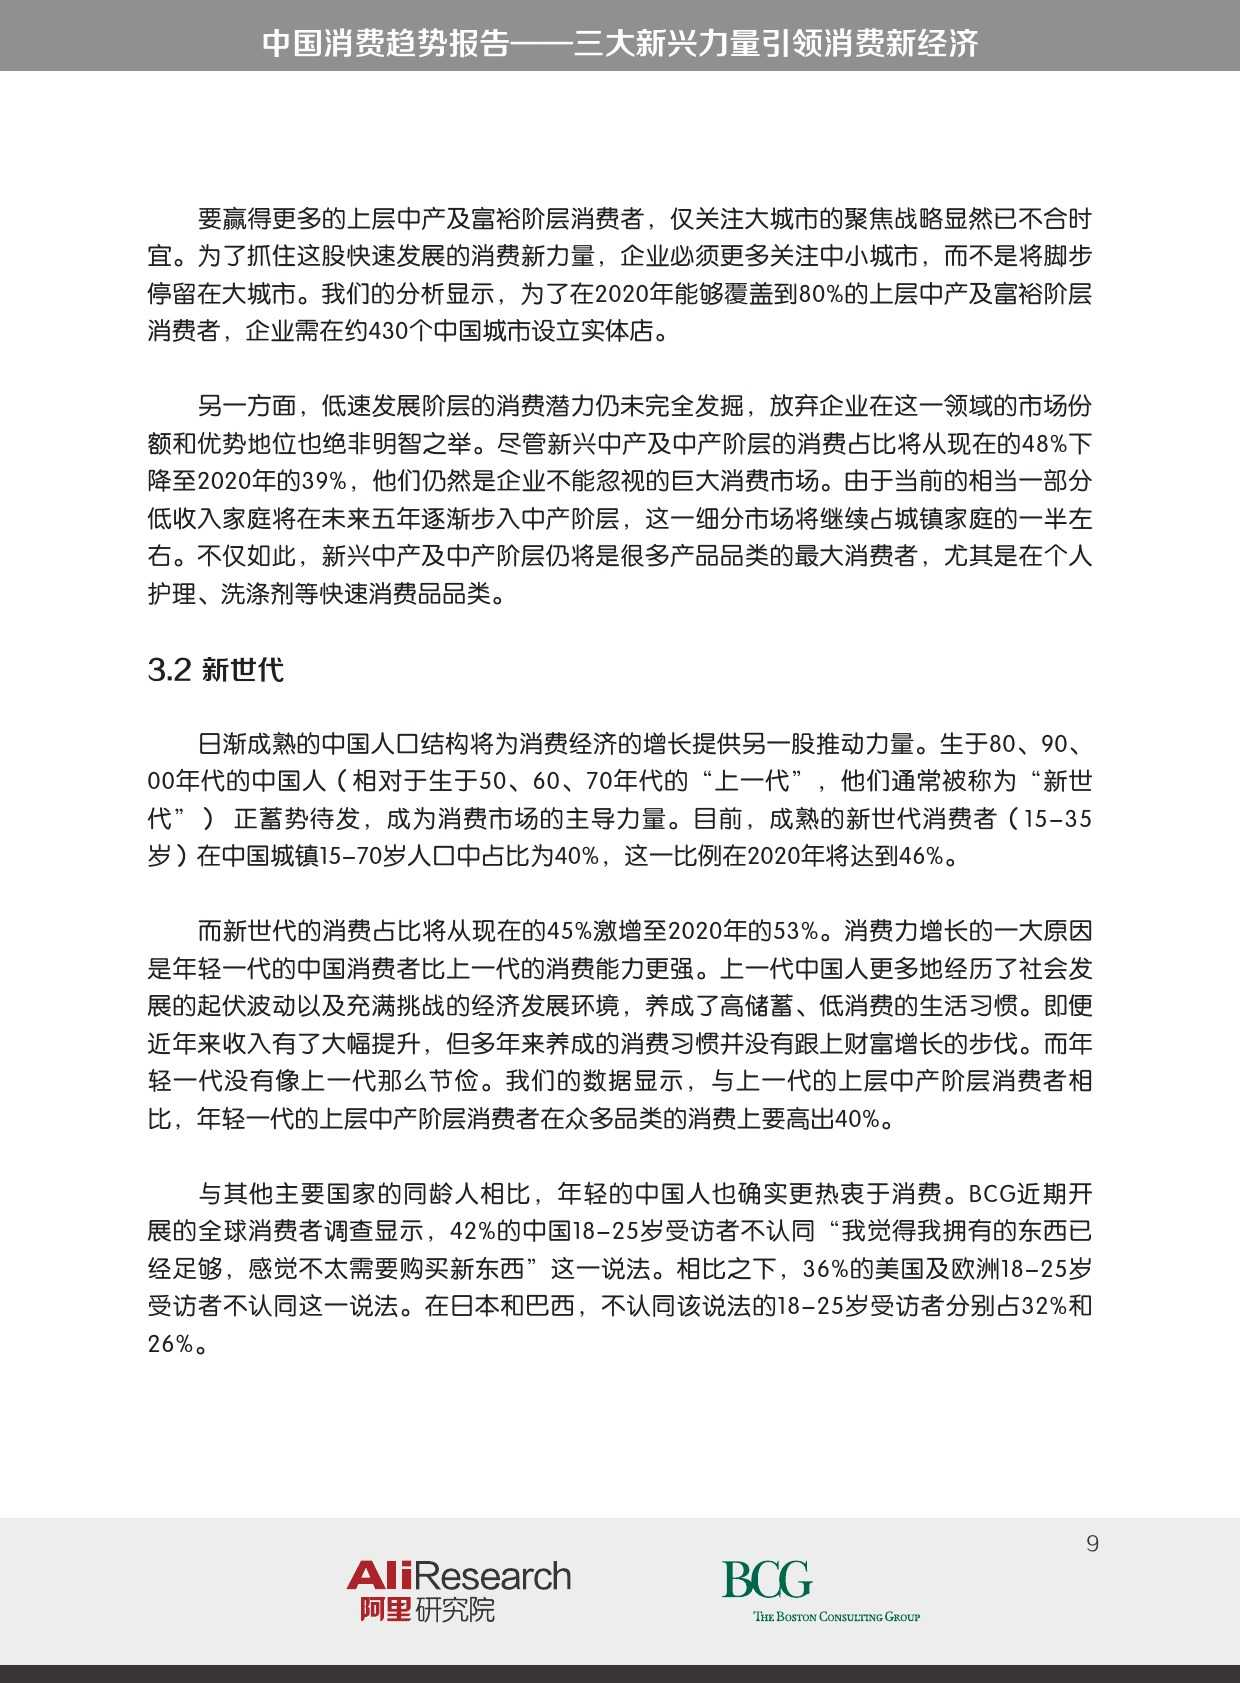 BCG_The_New_China_Playbook_Dec_2015_CHN_000009